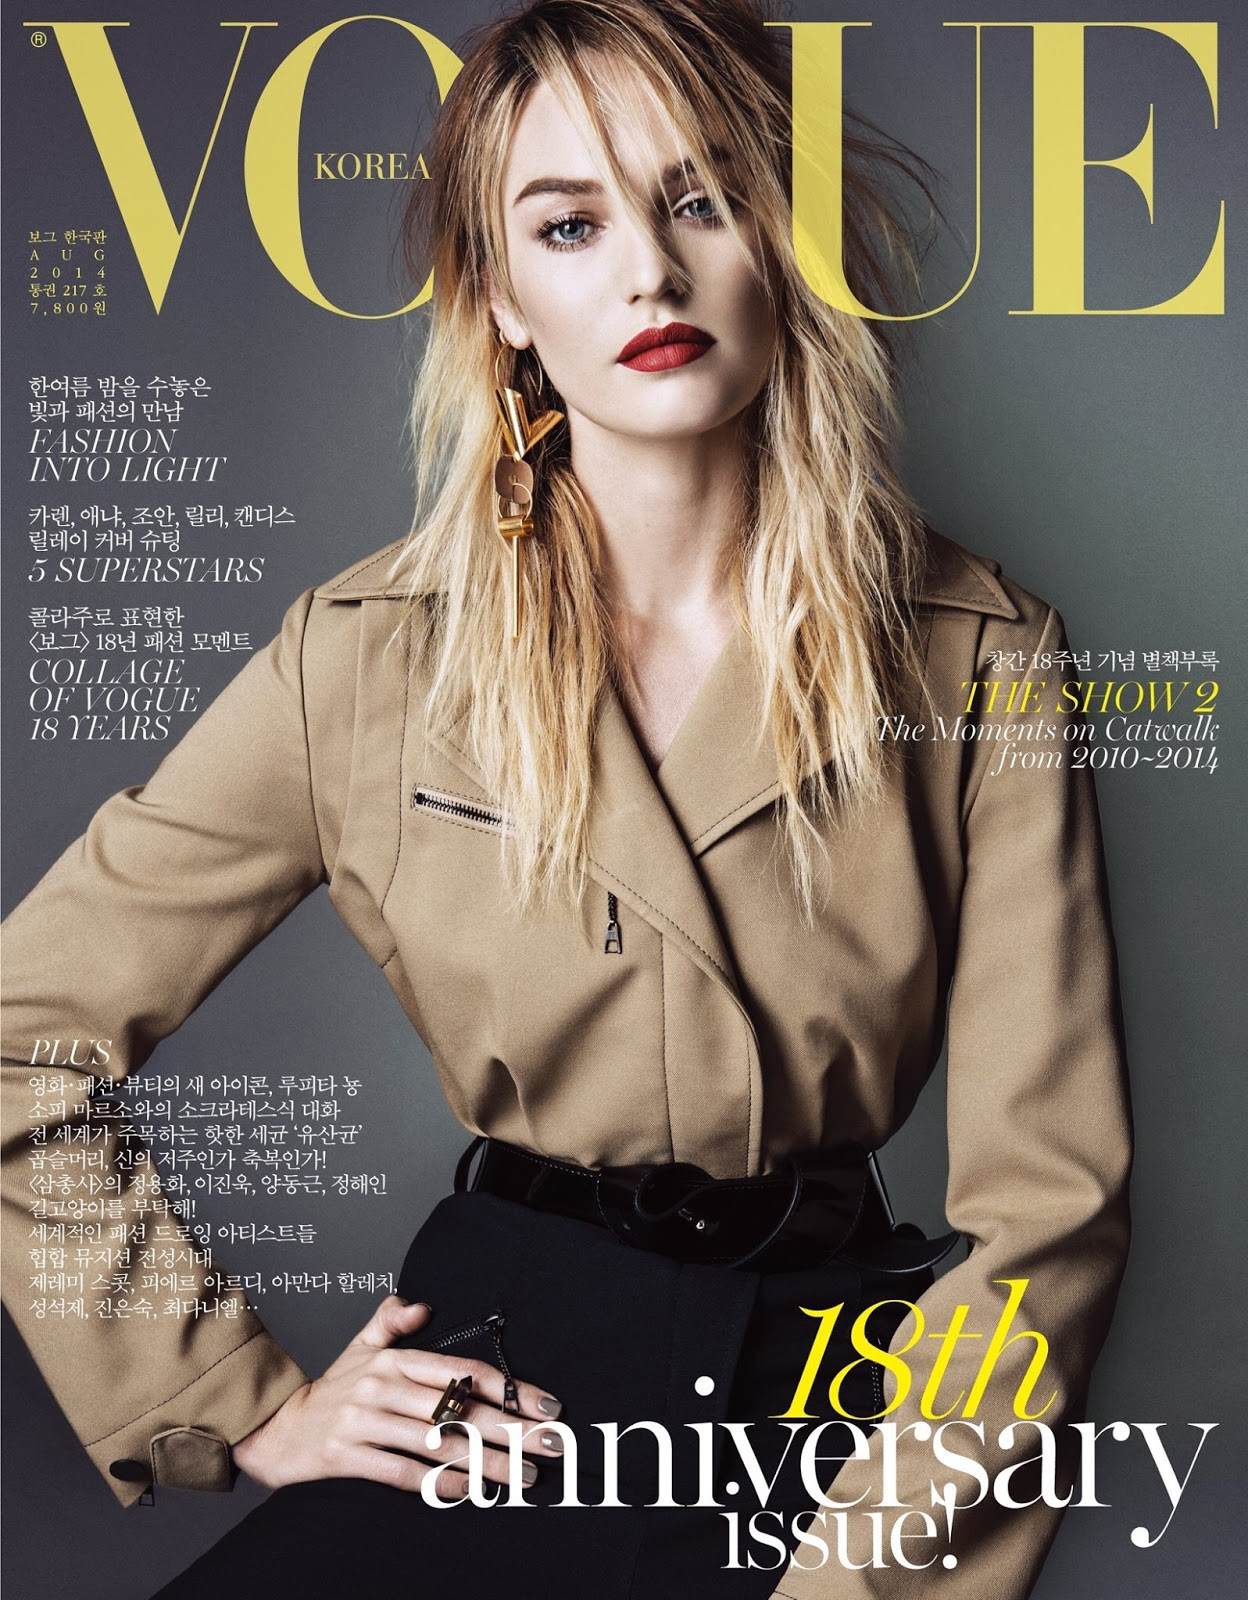 Vogue S Covers Gigi Hadid: Vogue's Covers: Candice Swanepoel